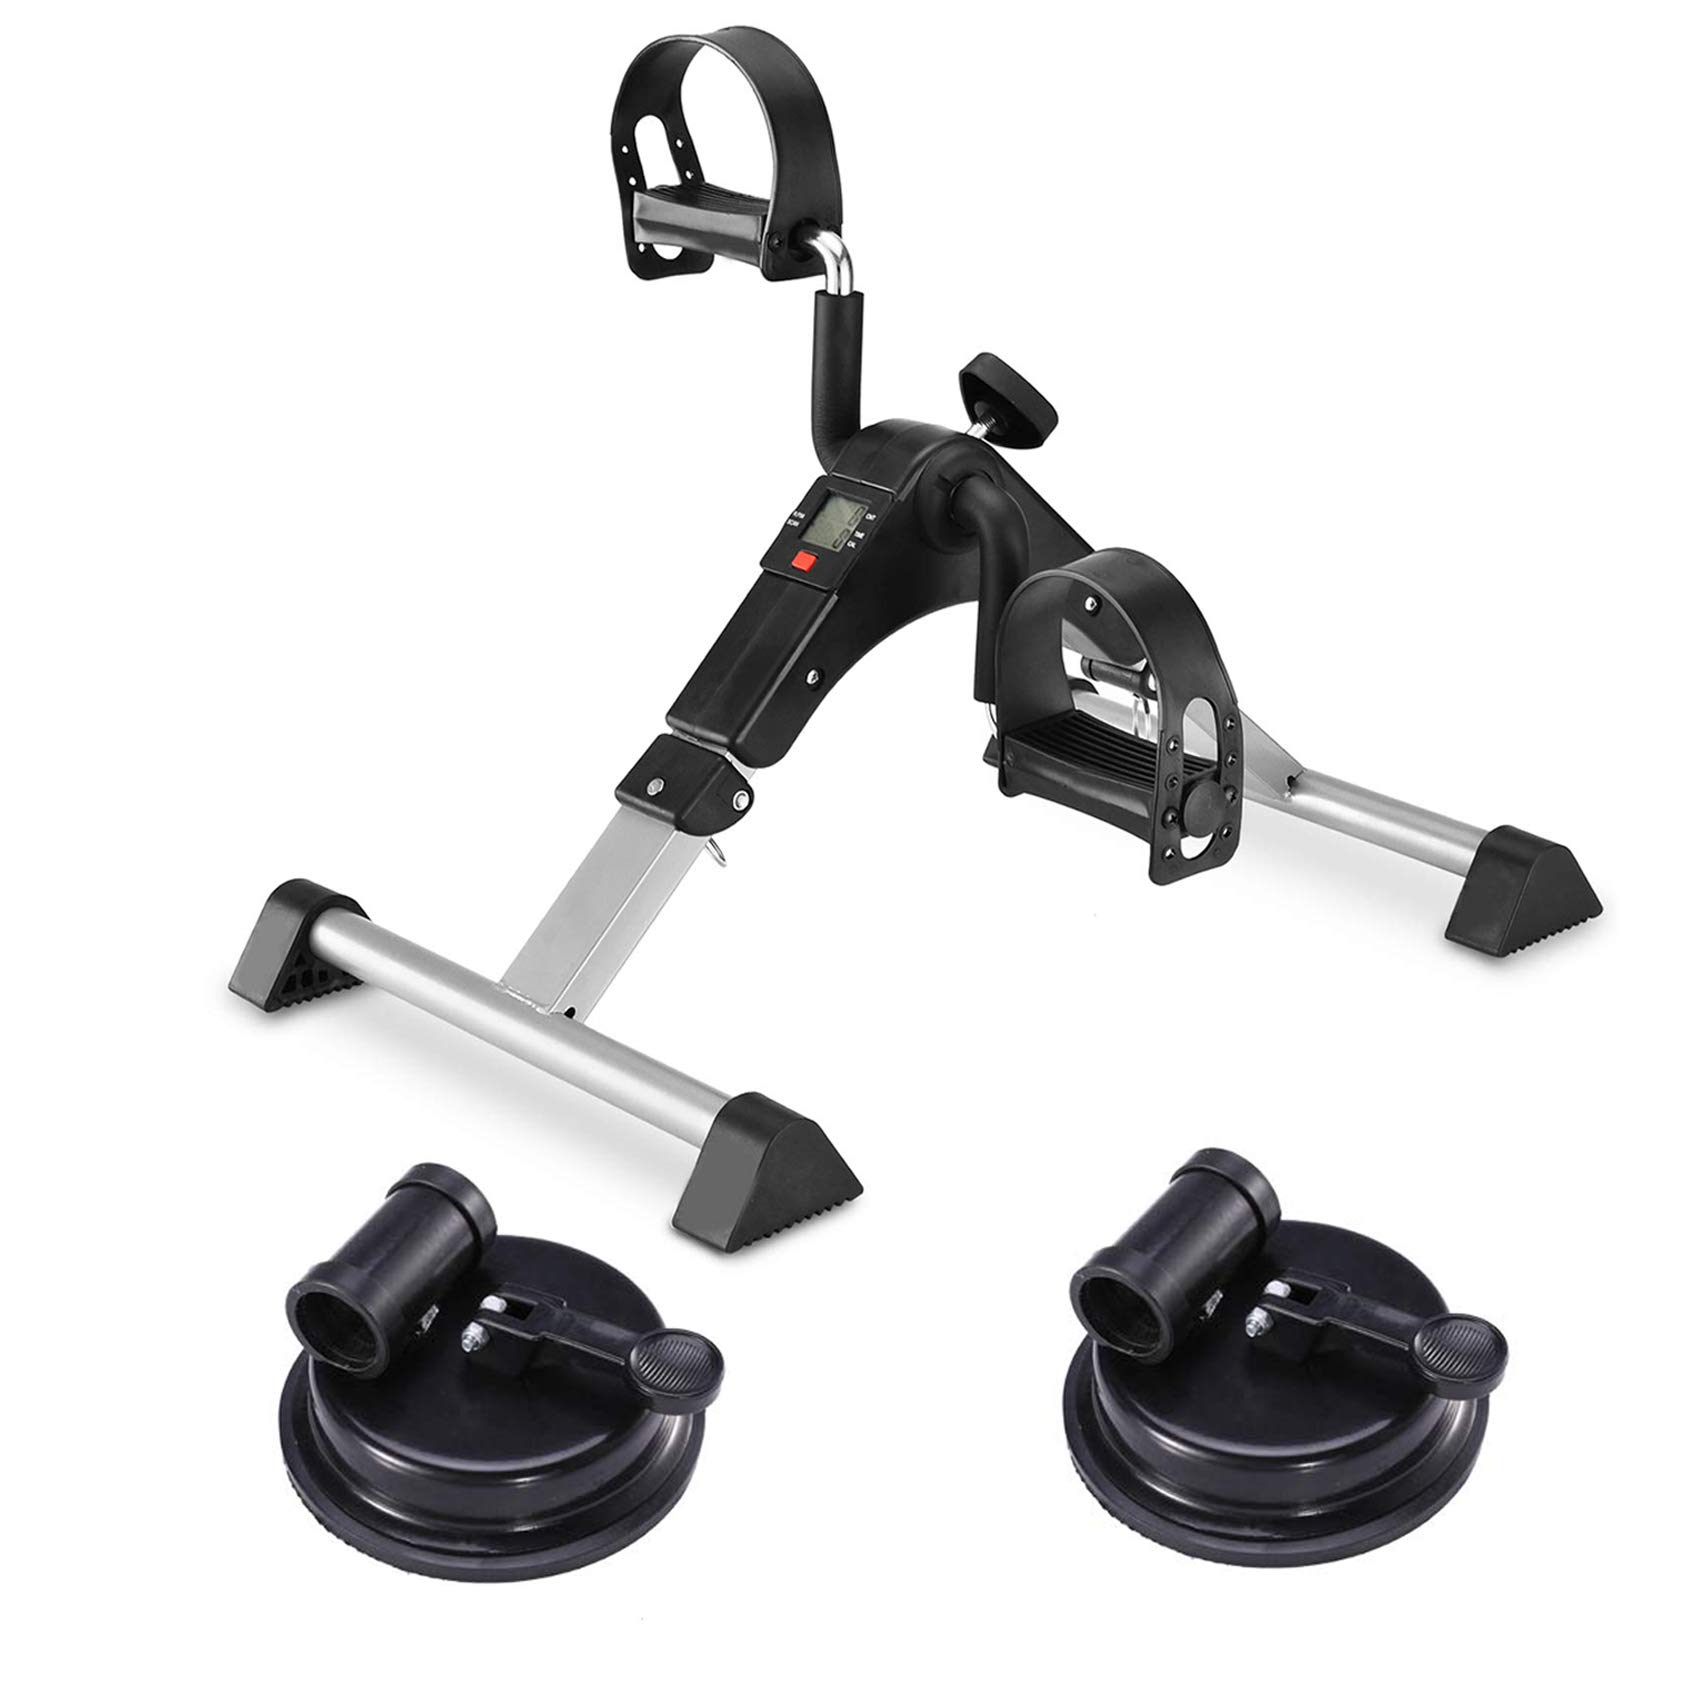 MOMODA Foot Pedal Exerciser Mini Exercise Bike with Suckers Non-Slip(Black/Gray)